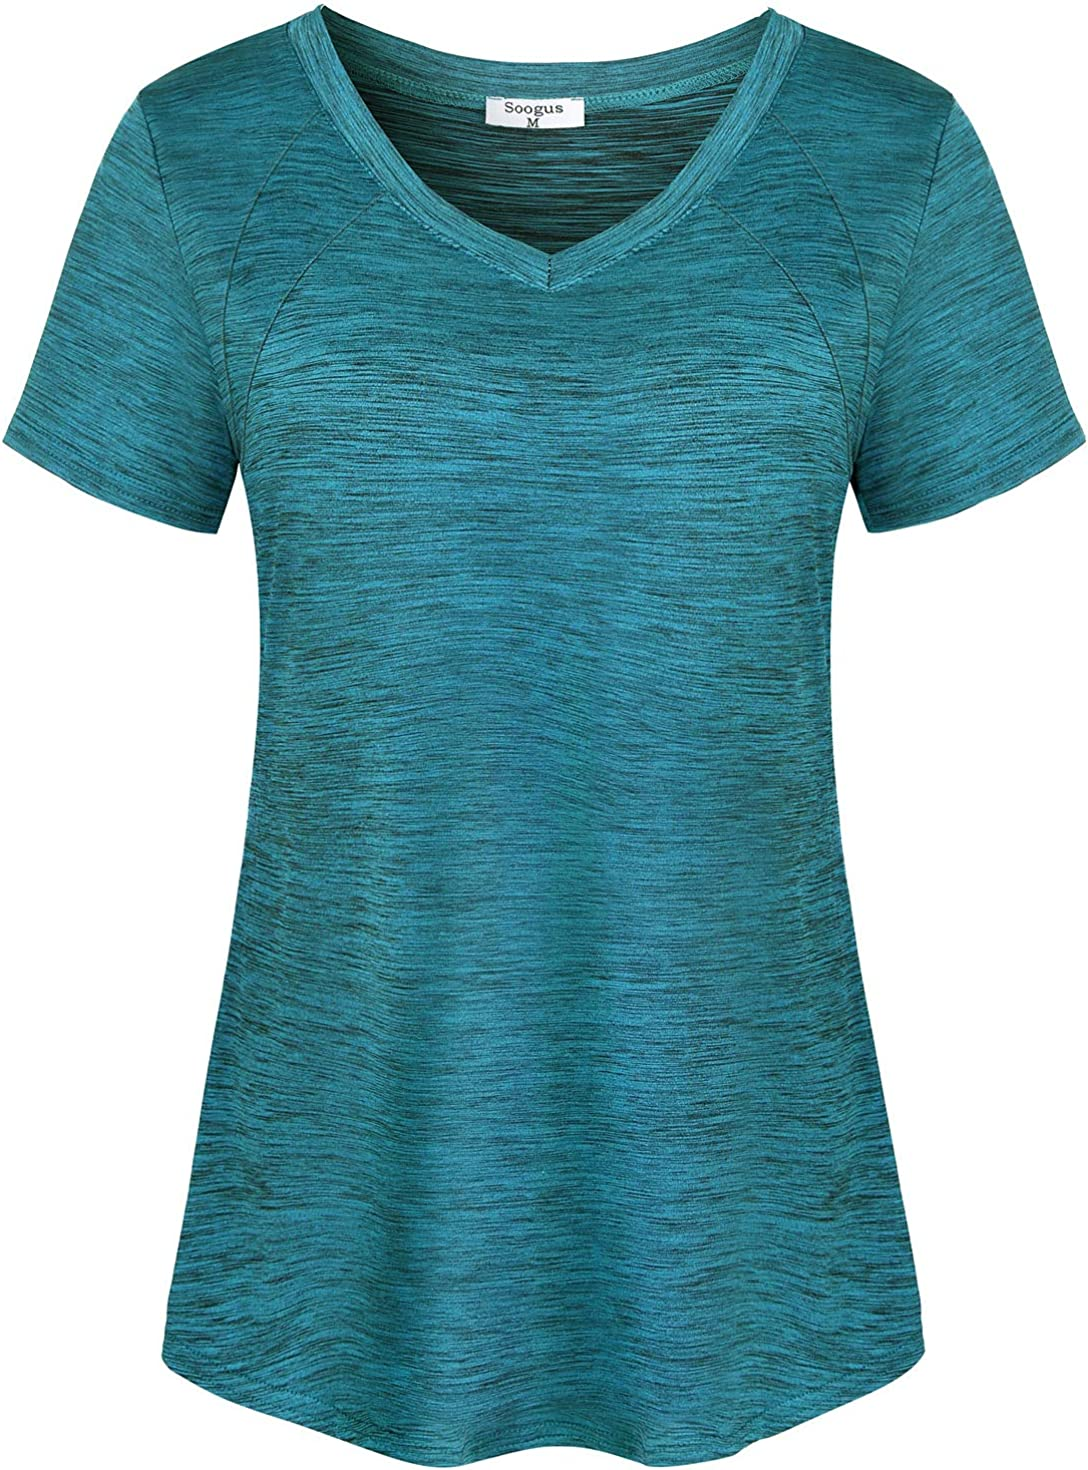 Soogus Women's Yoga Tops V Neck Workout Active Wear Athletic Shirts